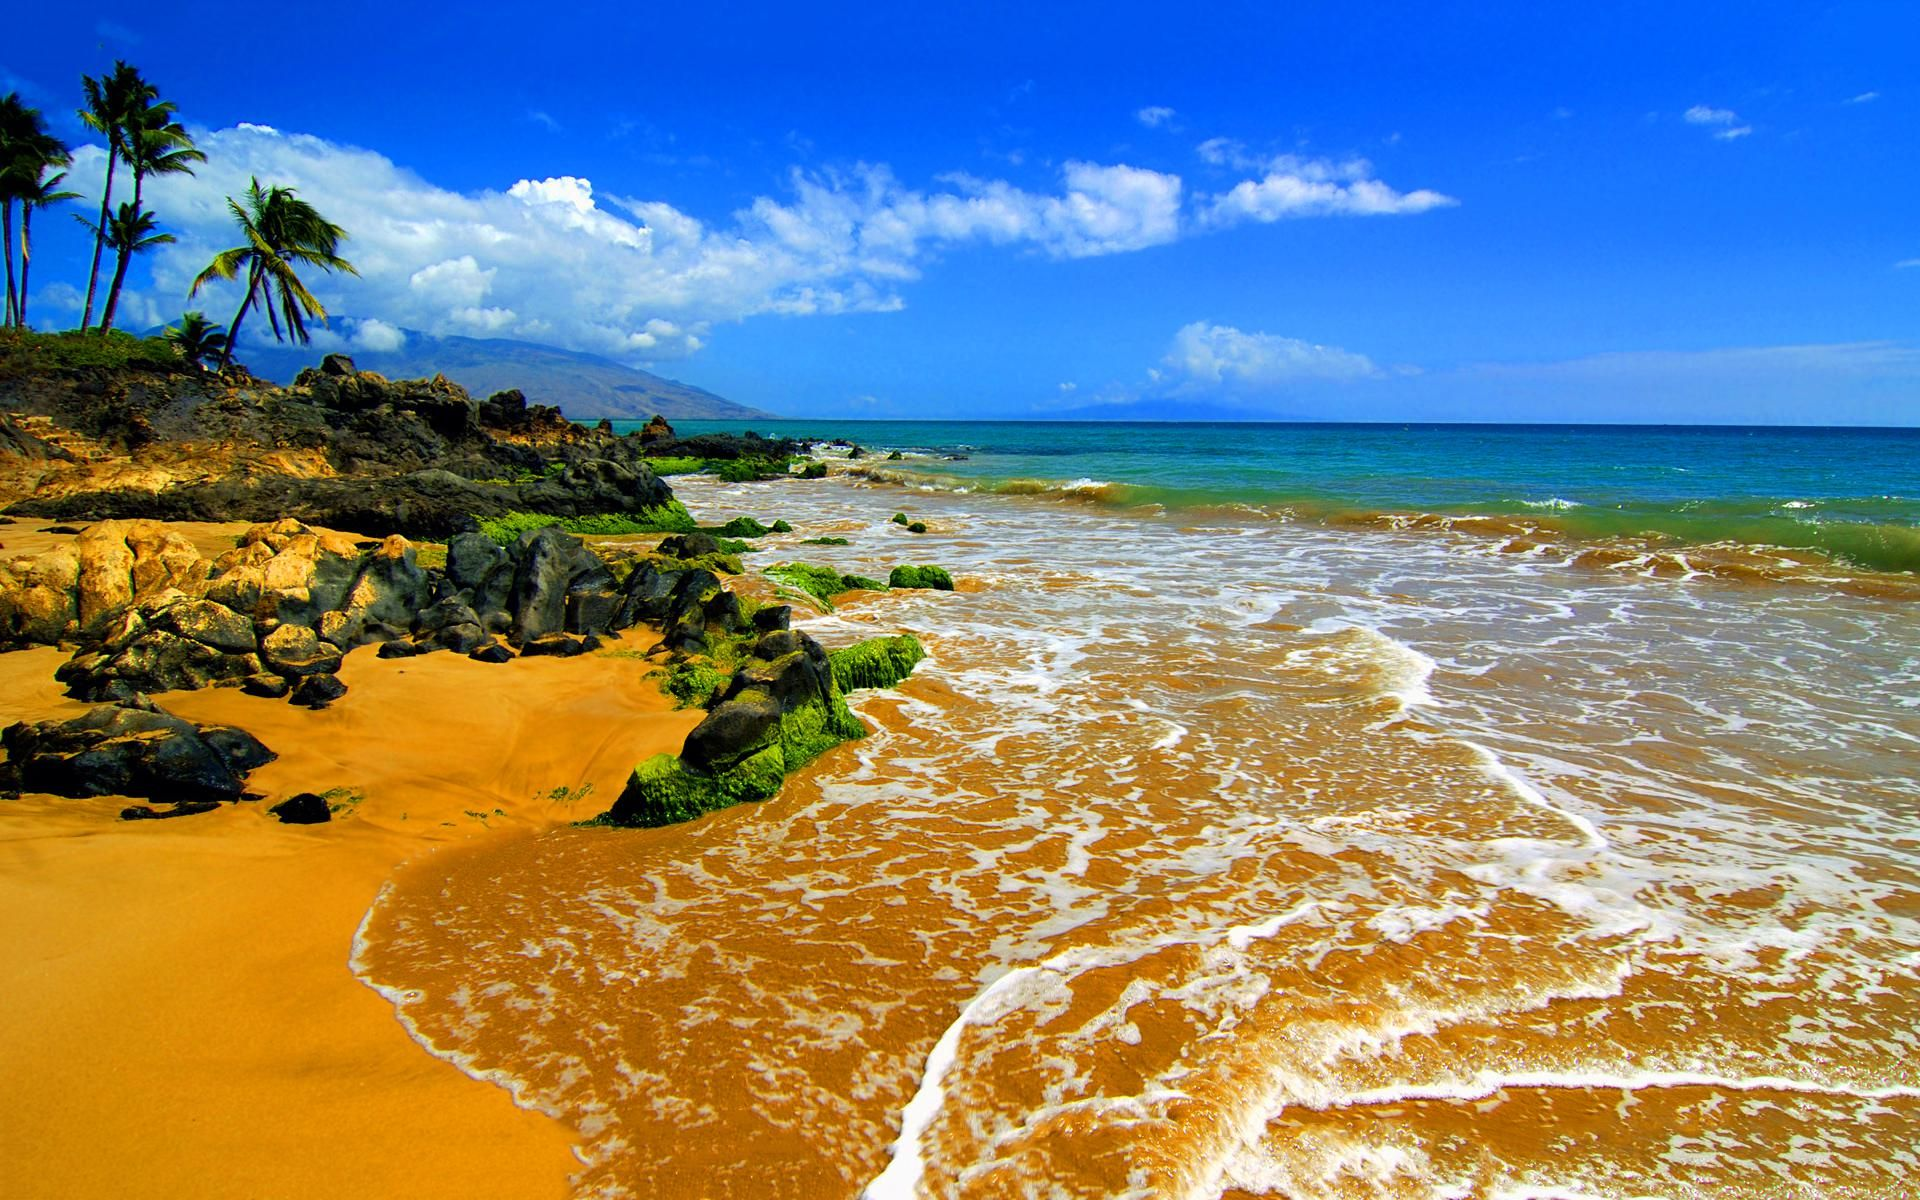 cool beach maui wallpaper check more at http://www.finewallpapers.eu